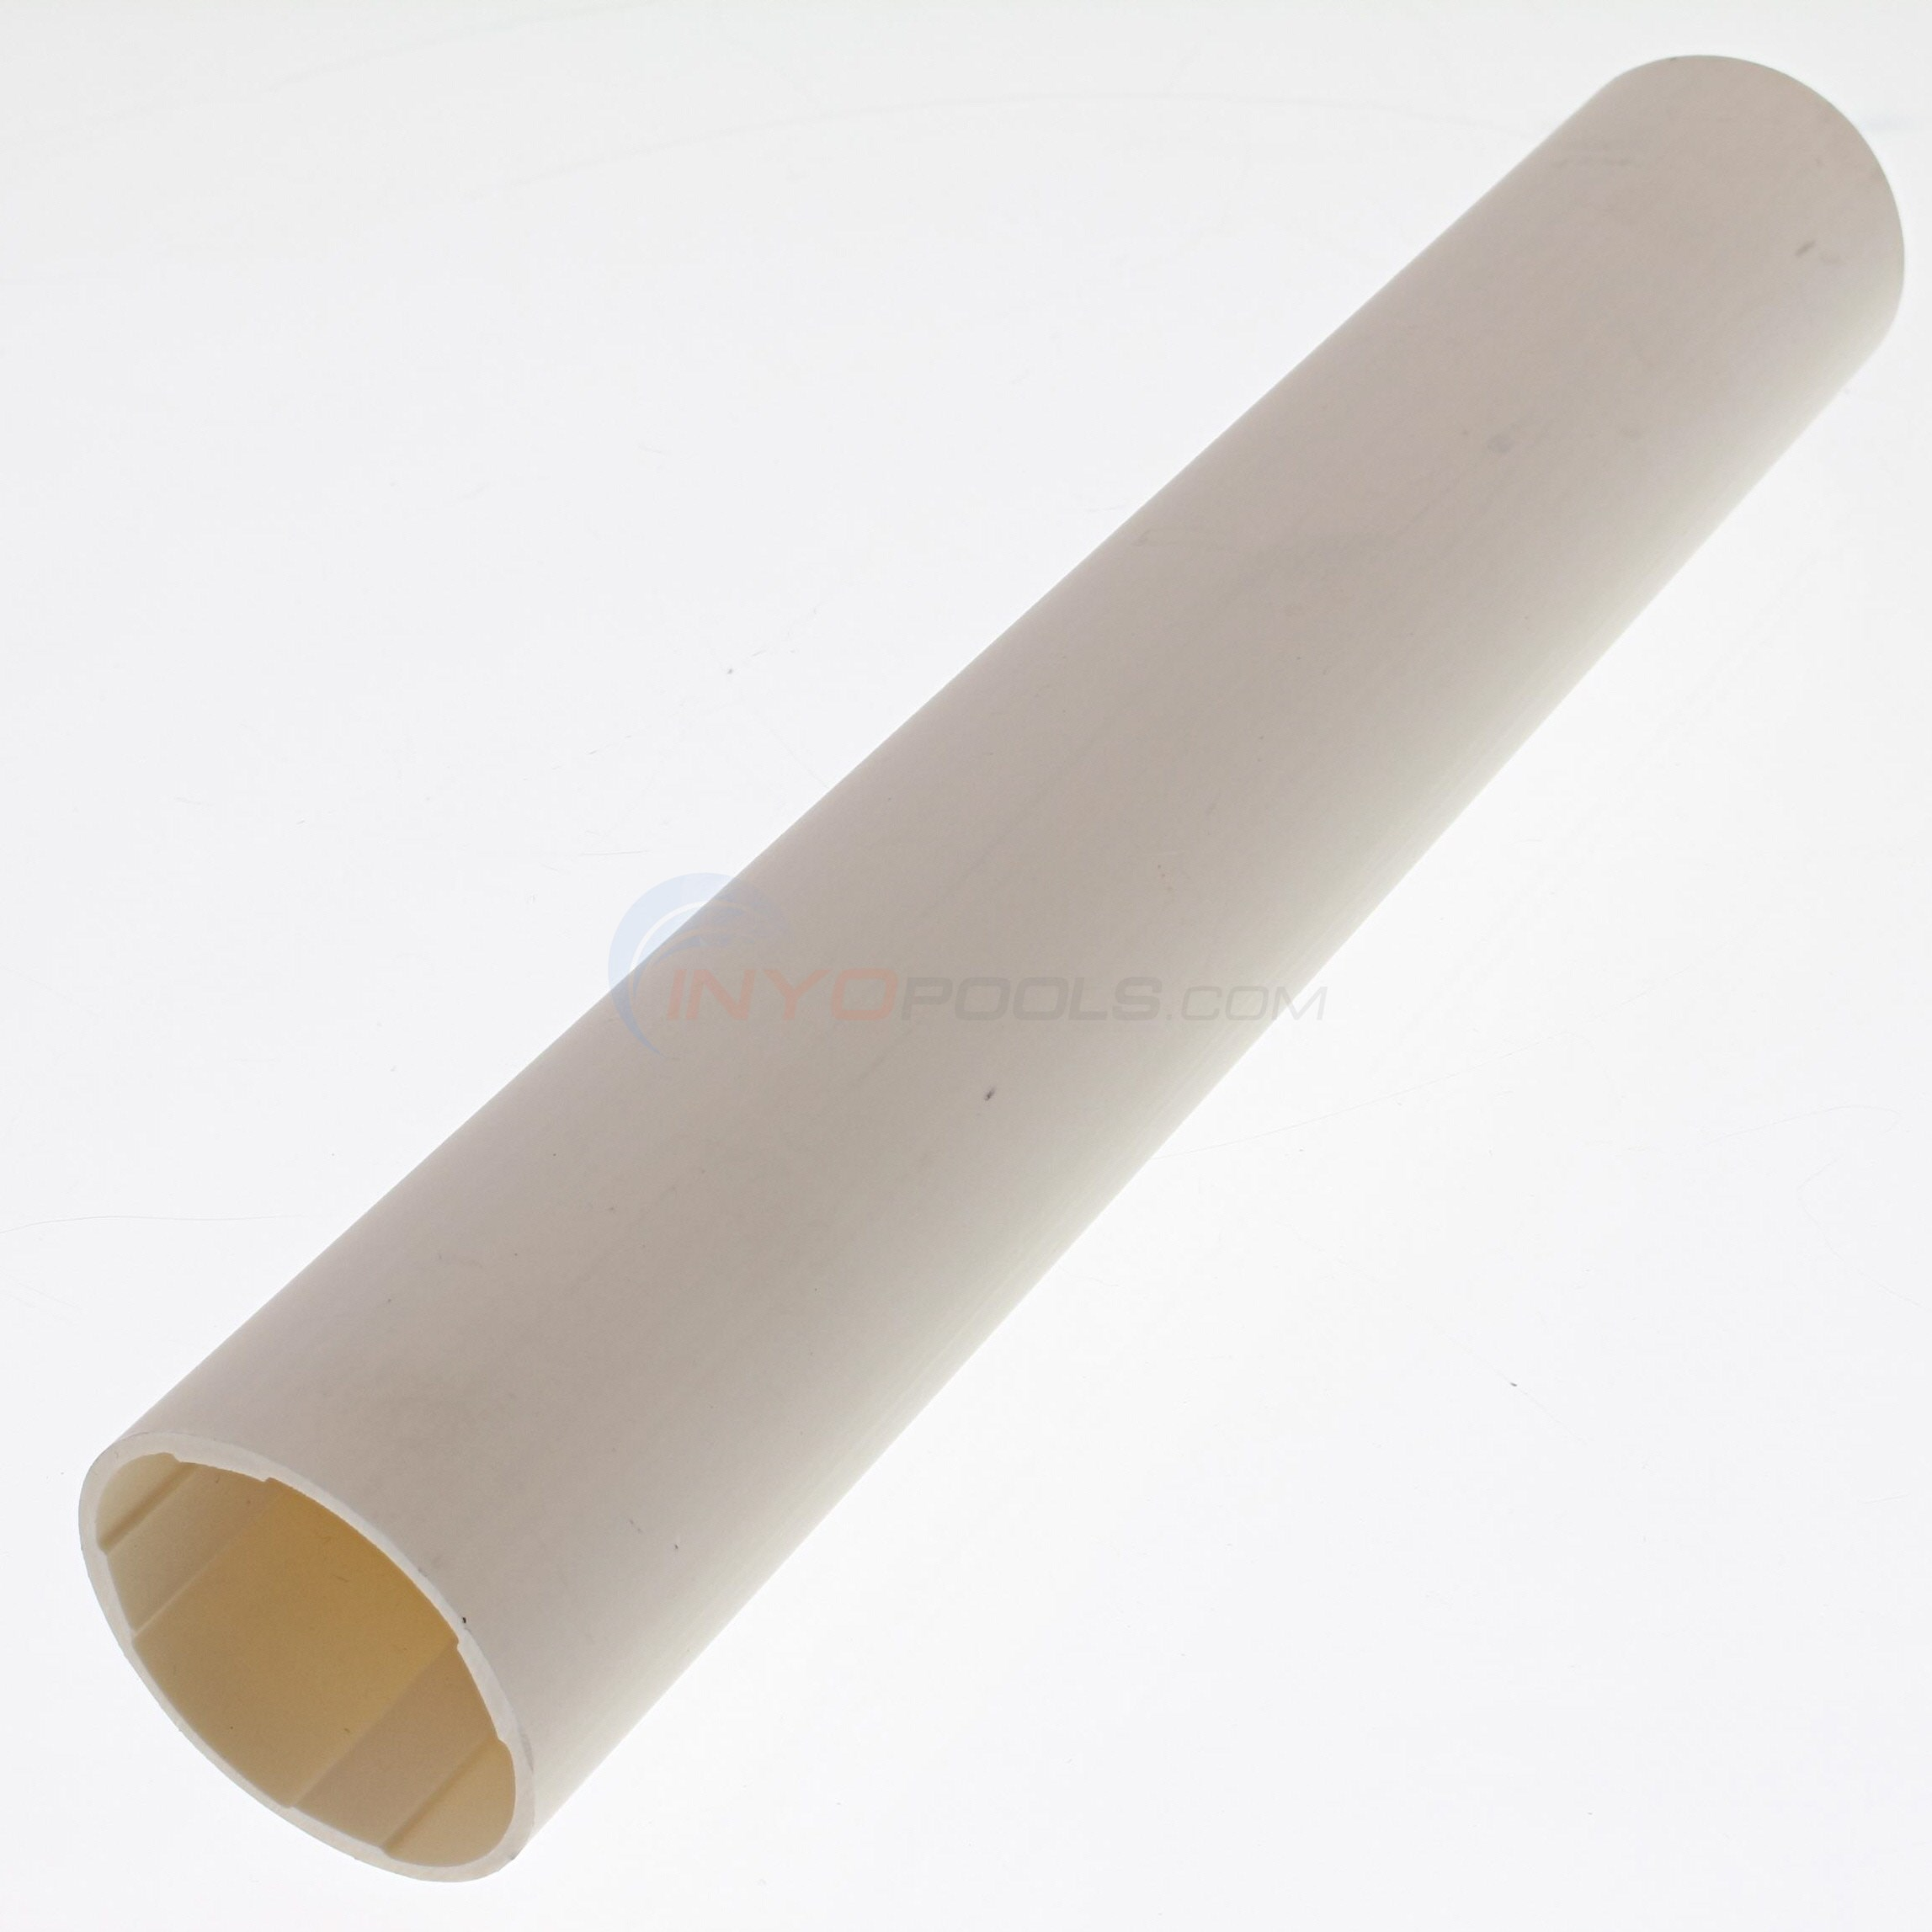 Maytronics Pvc Tube For 2x2 Tt Brush Assy (6100918)